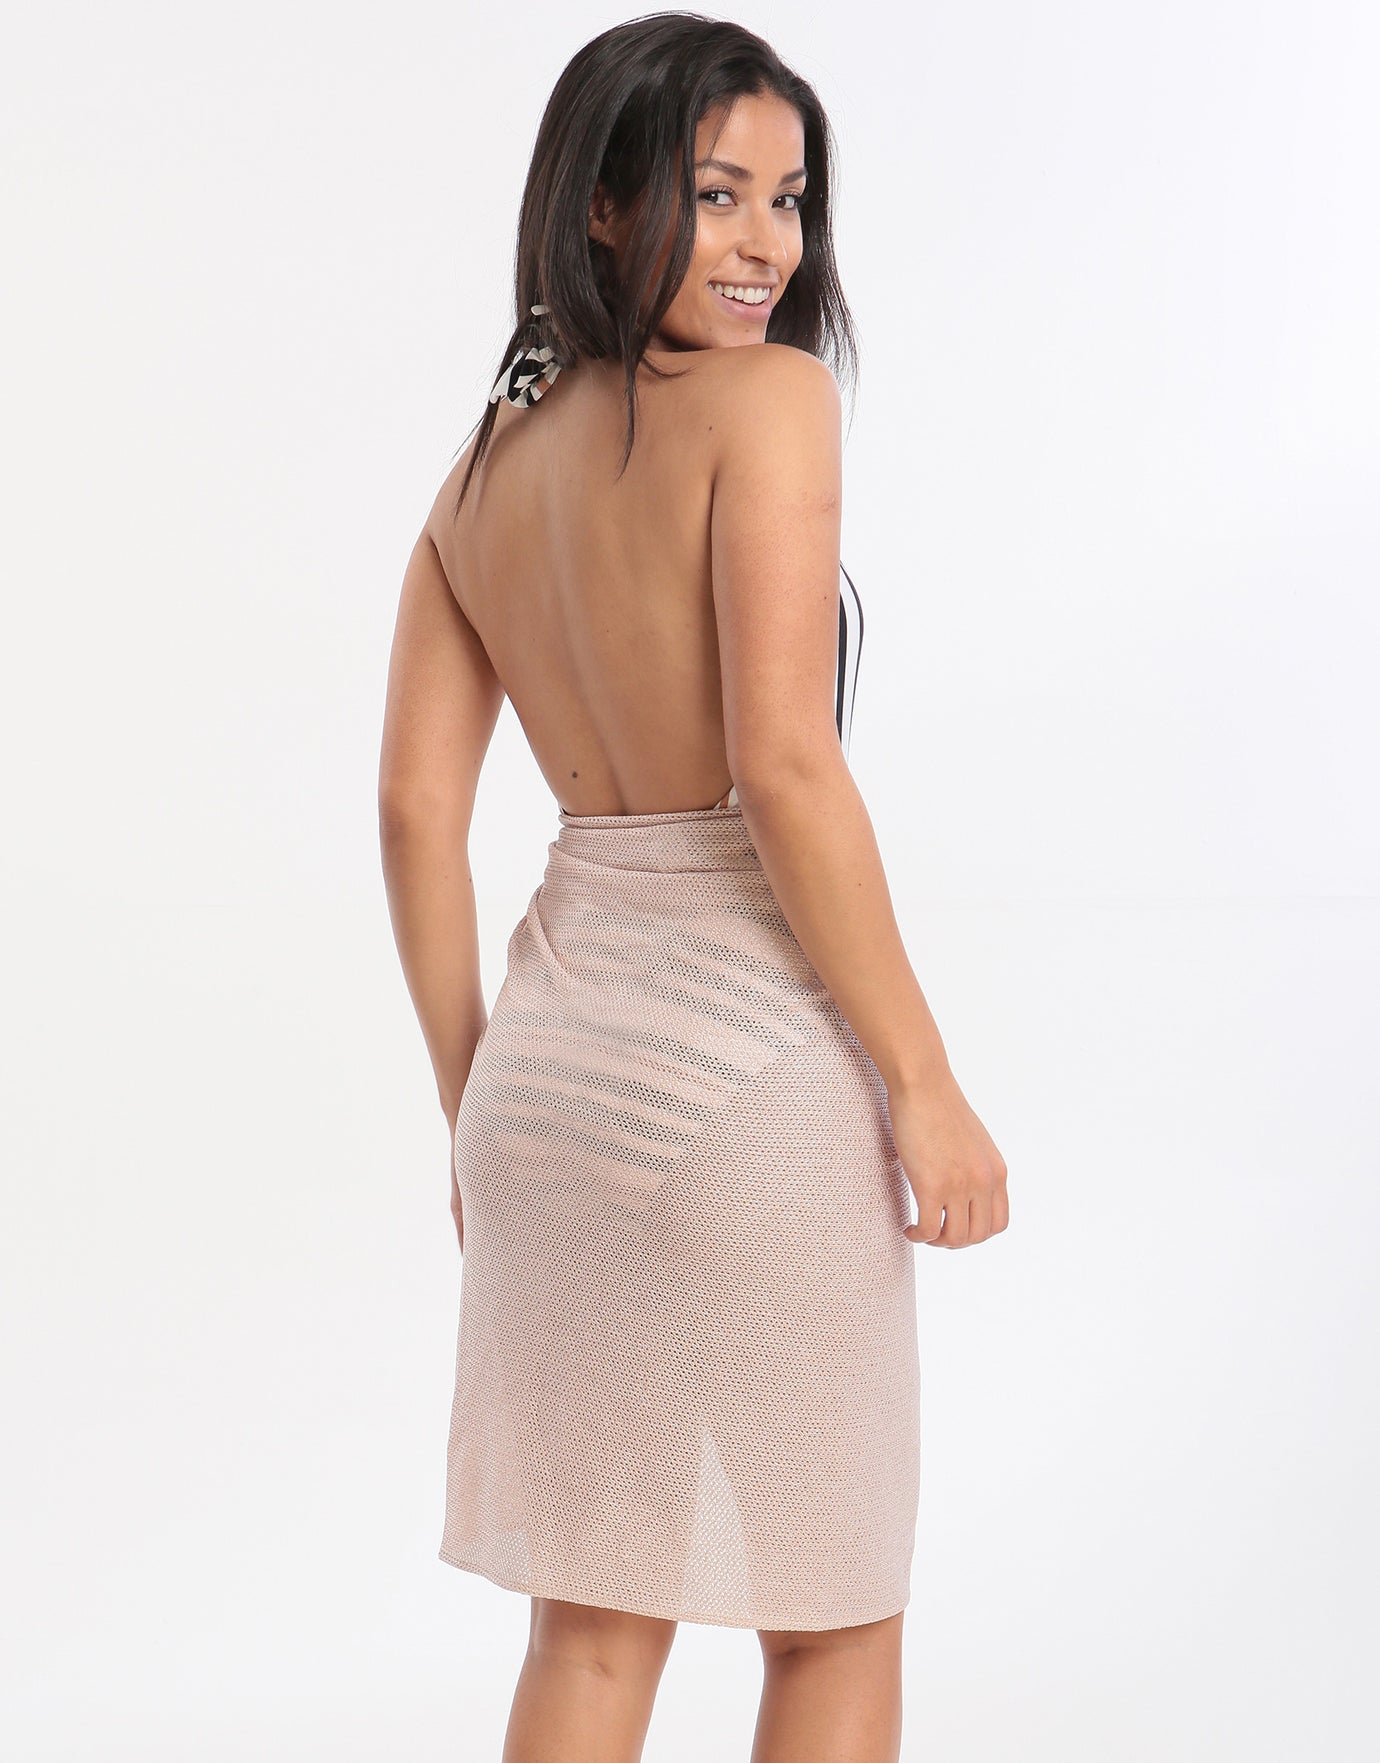 Jets Mirage Sarong - Copper